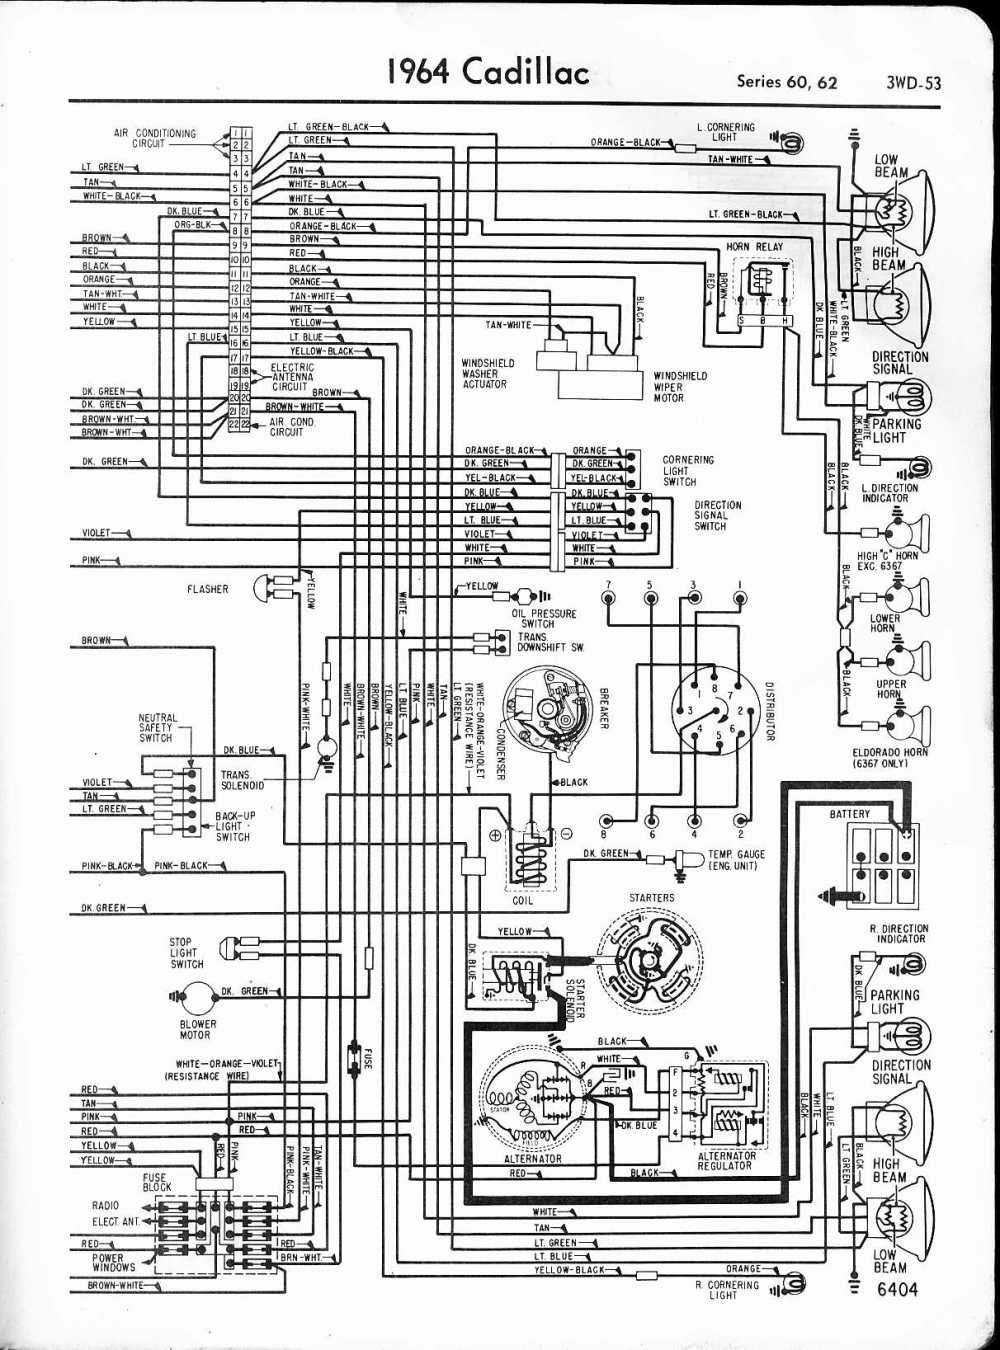 medium resolution of 1964 cadillac wiring harness wiring diagram expert 1964 cadillac wiring harness 1964 cadillac wiring harness